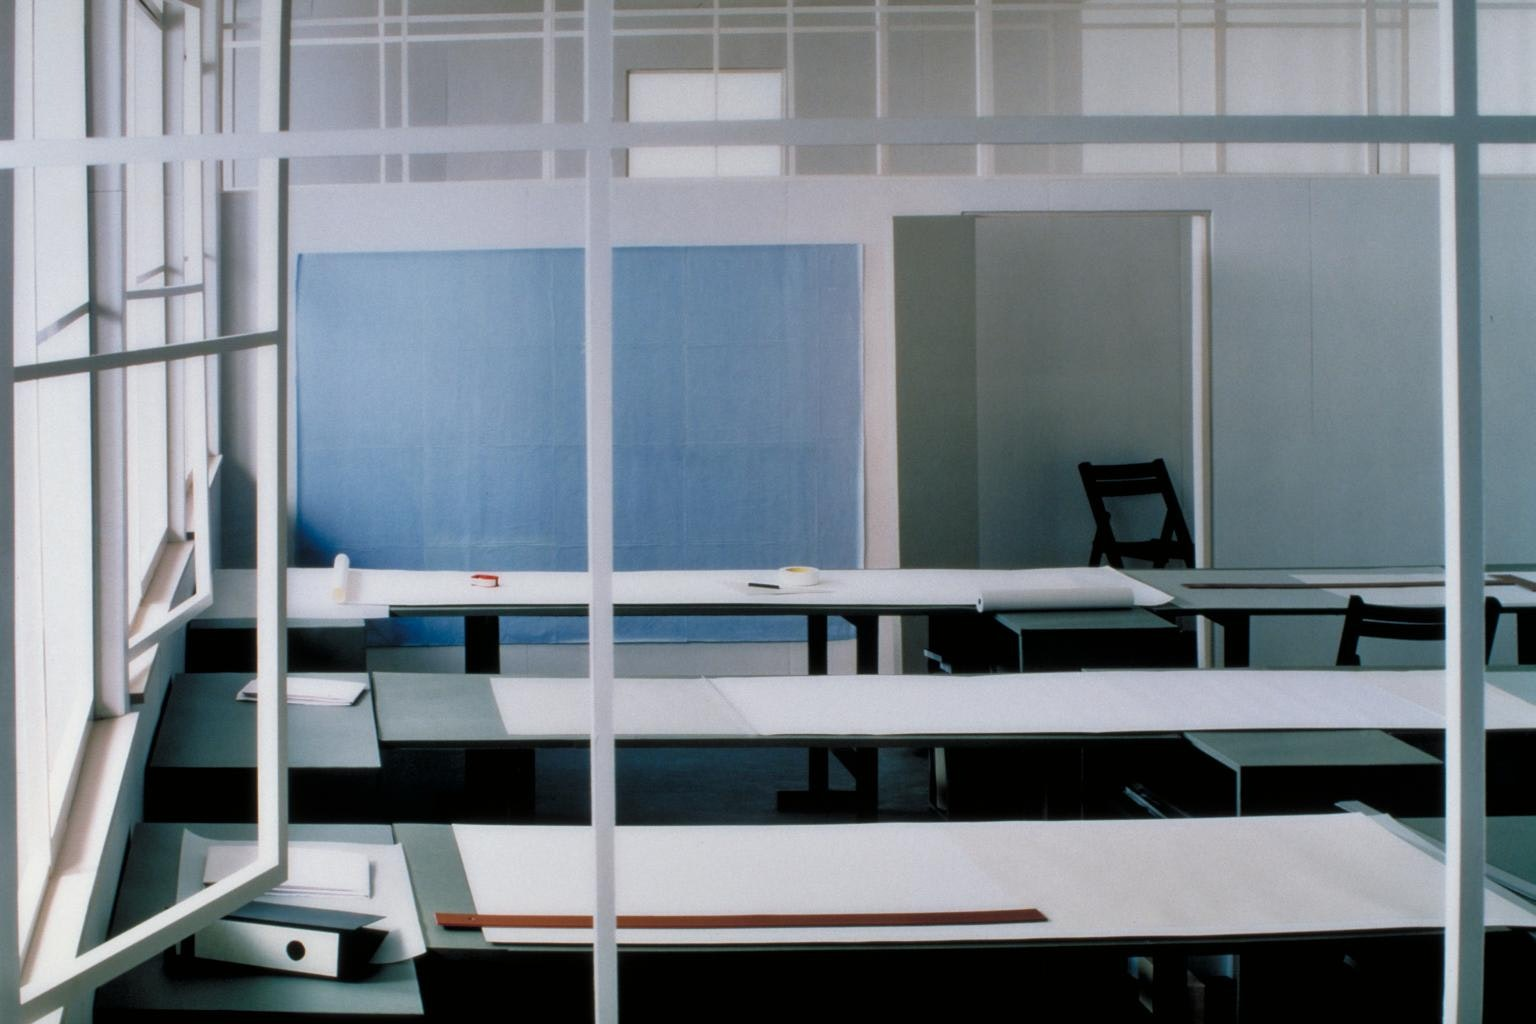 Zeichensaal (Drafting Room) 1996 by Thomas Demand born 1964